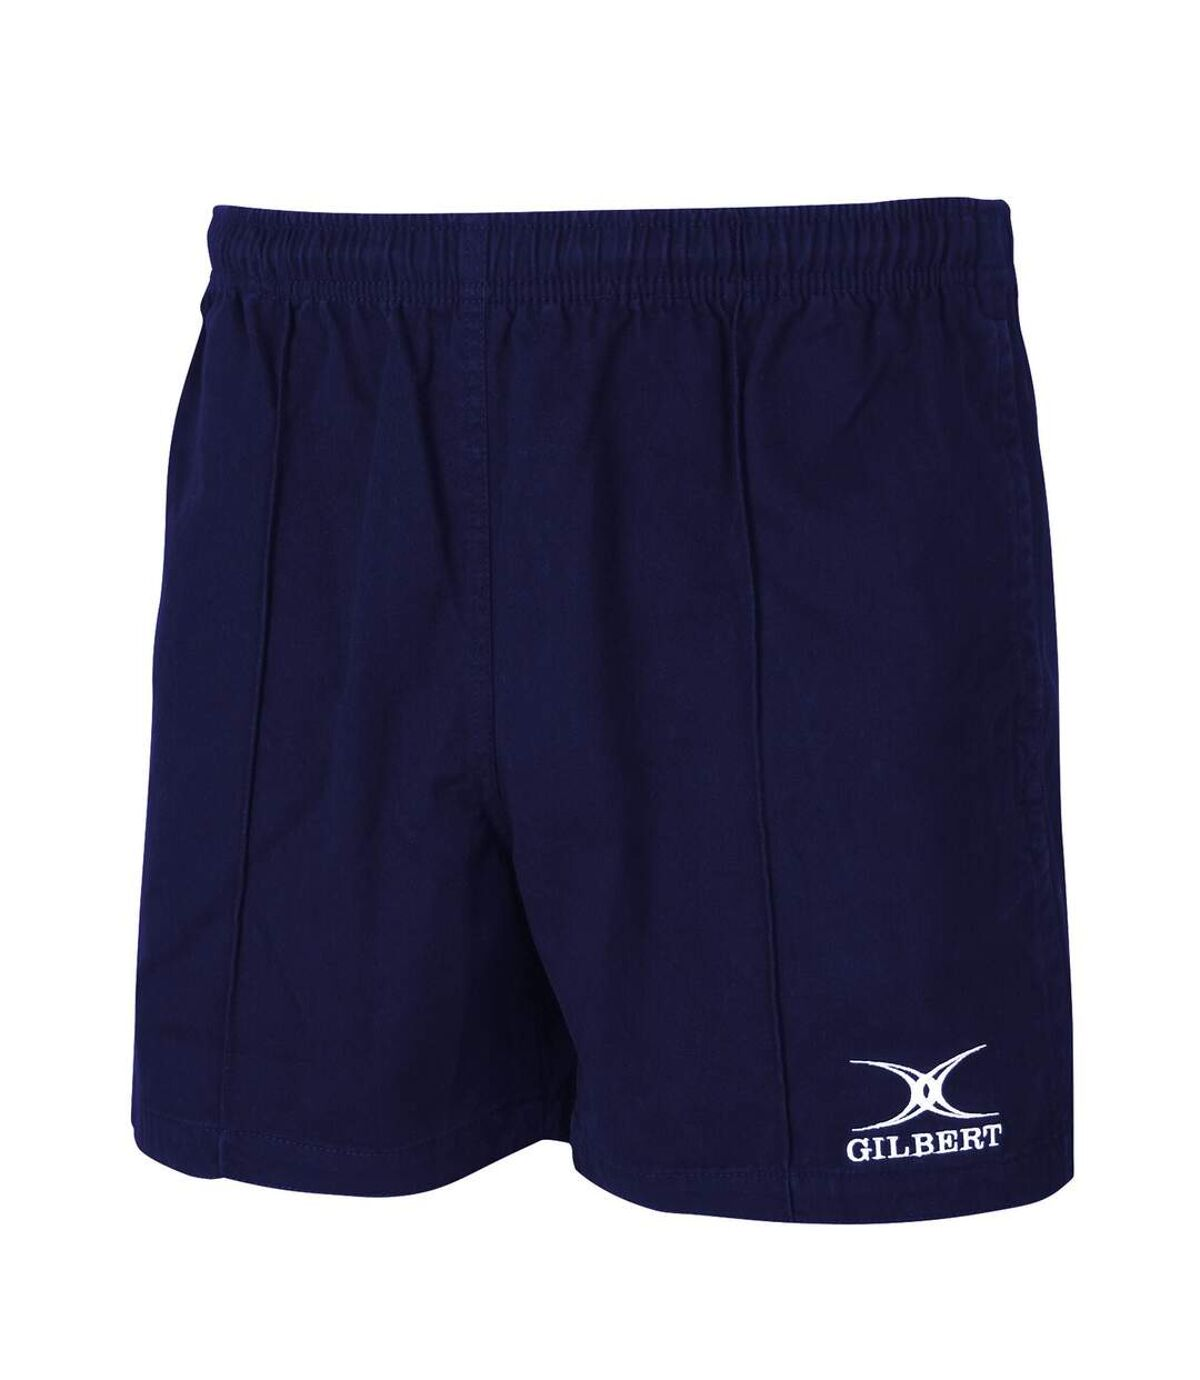 Gilbert Rugby Mens Kiwi Pro Rugby Shorts (Navy) - UTRW5399